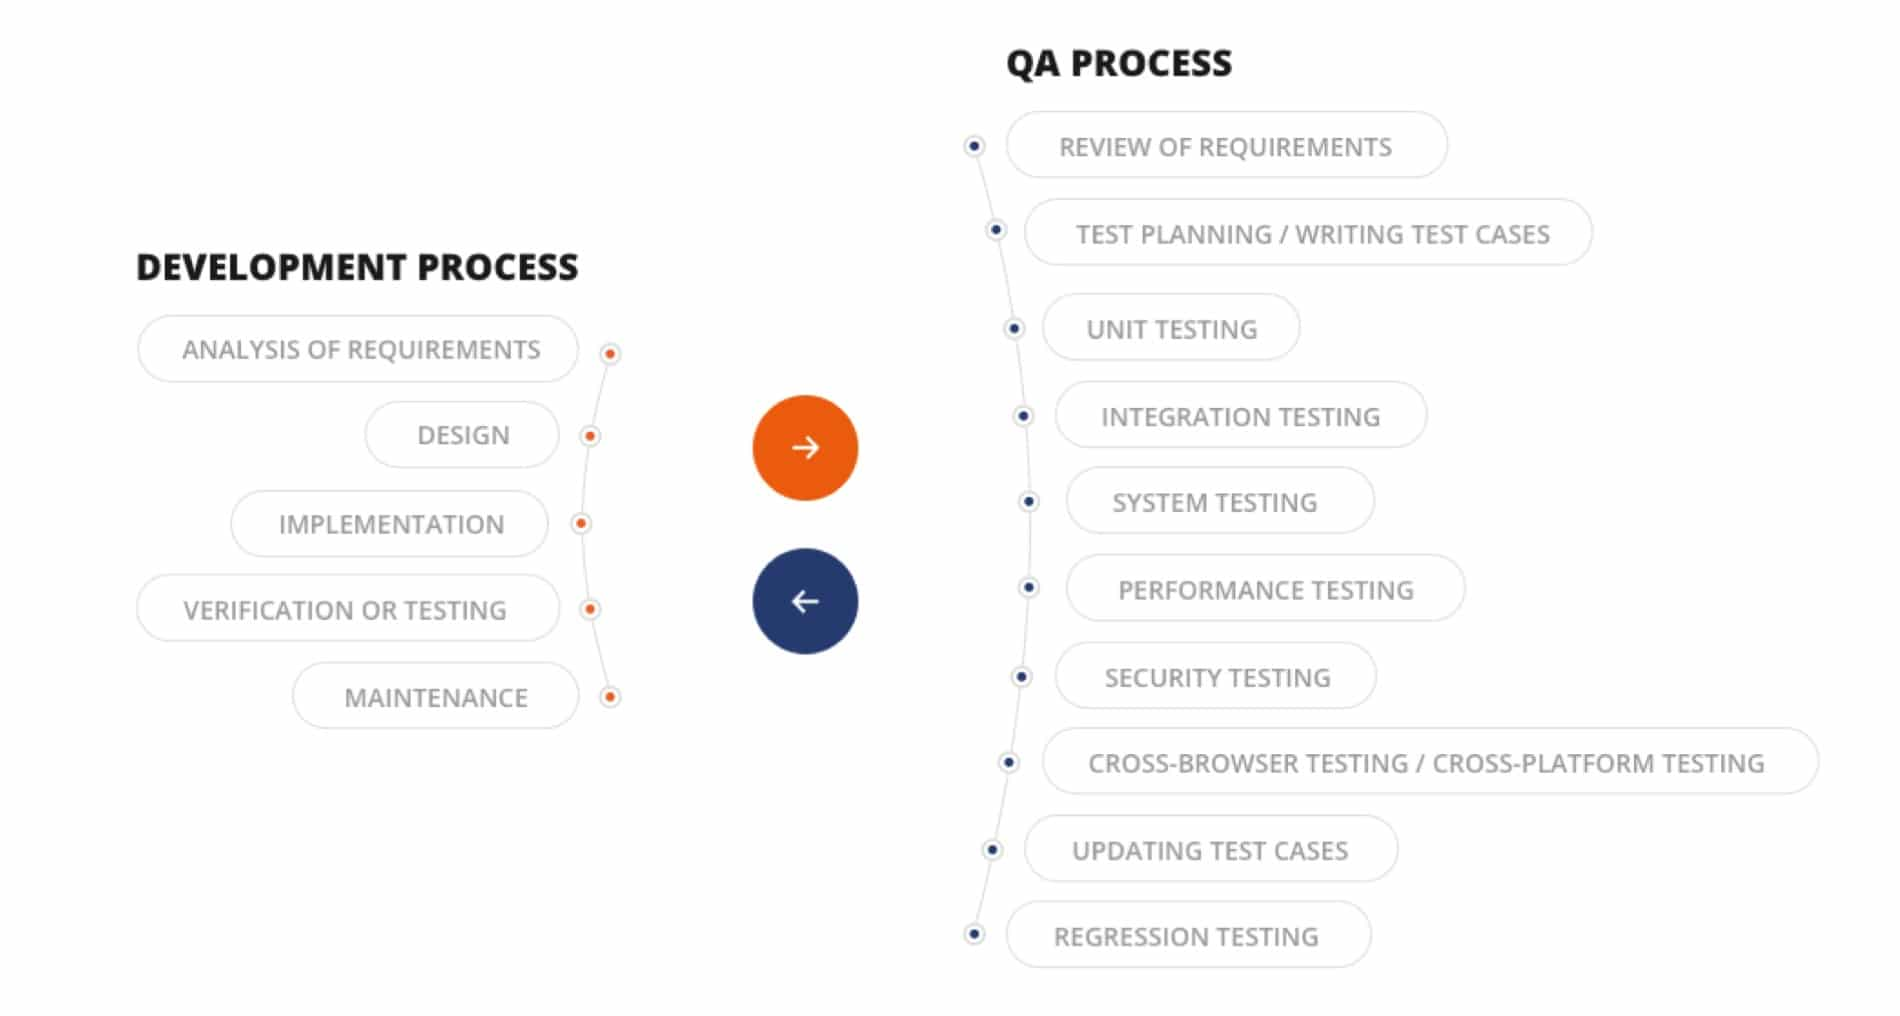 QA process for Heads of Operations and IT